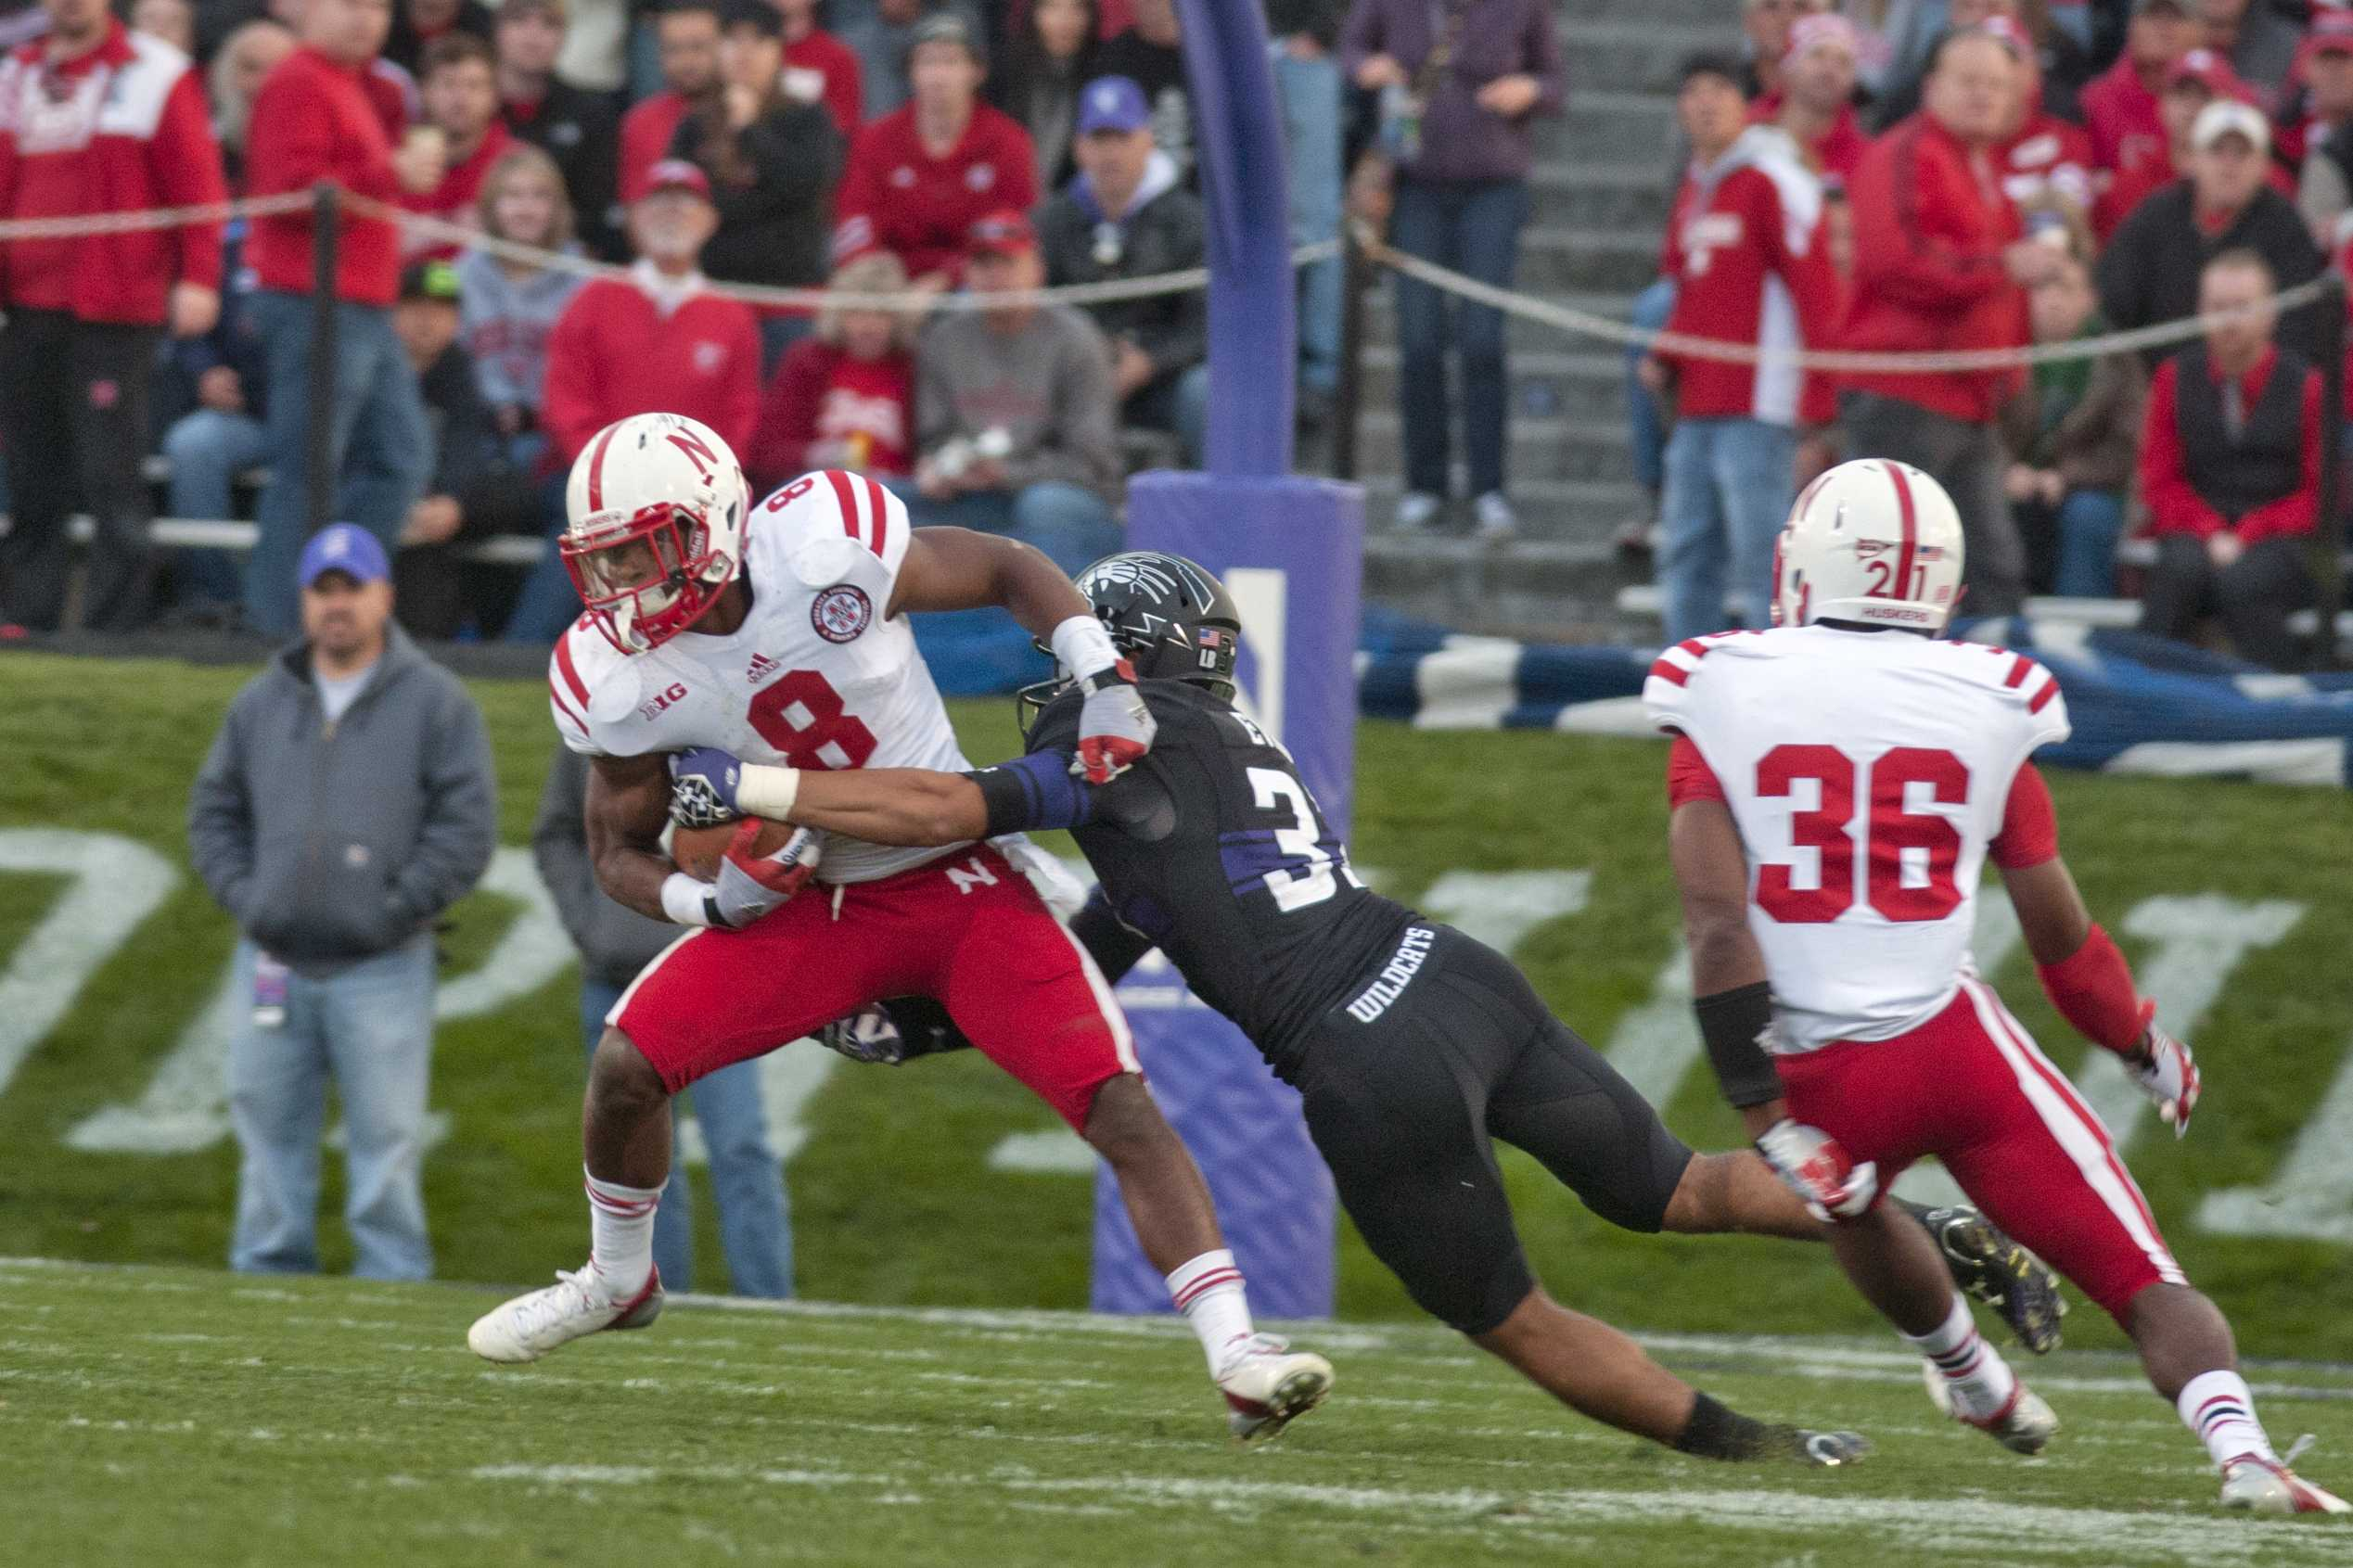 Northwestern cornerback Quinn Evans misses a tackle on Nebraska running back Ameer Abdullah. Abdullah finished with 101 yards on 19 carries.